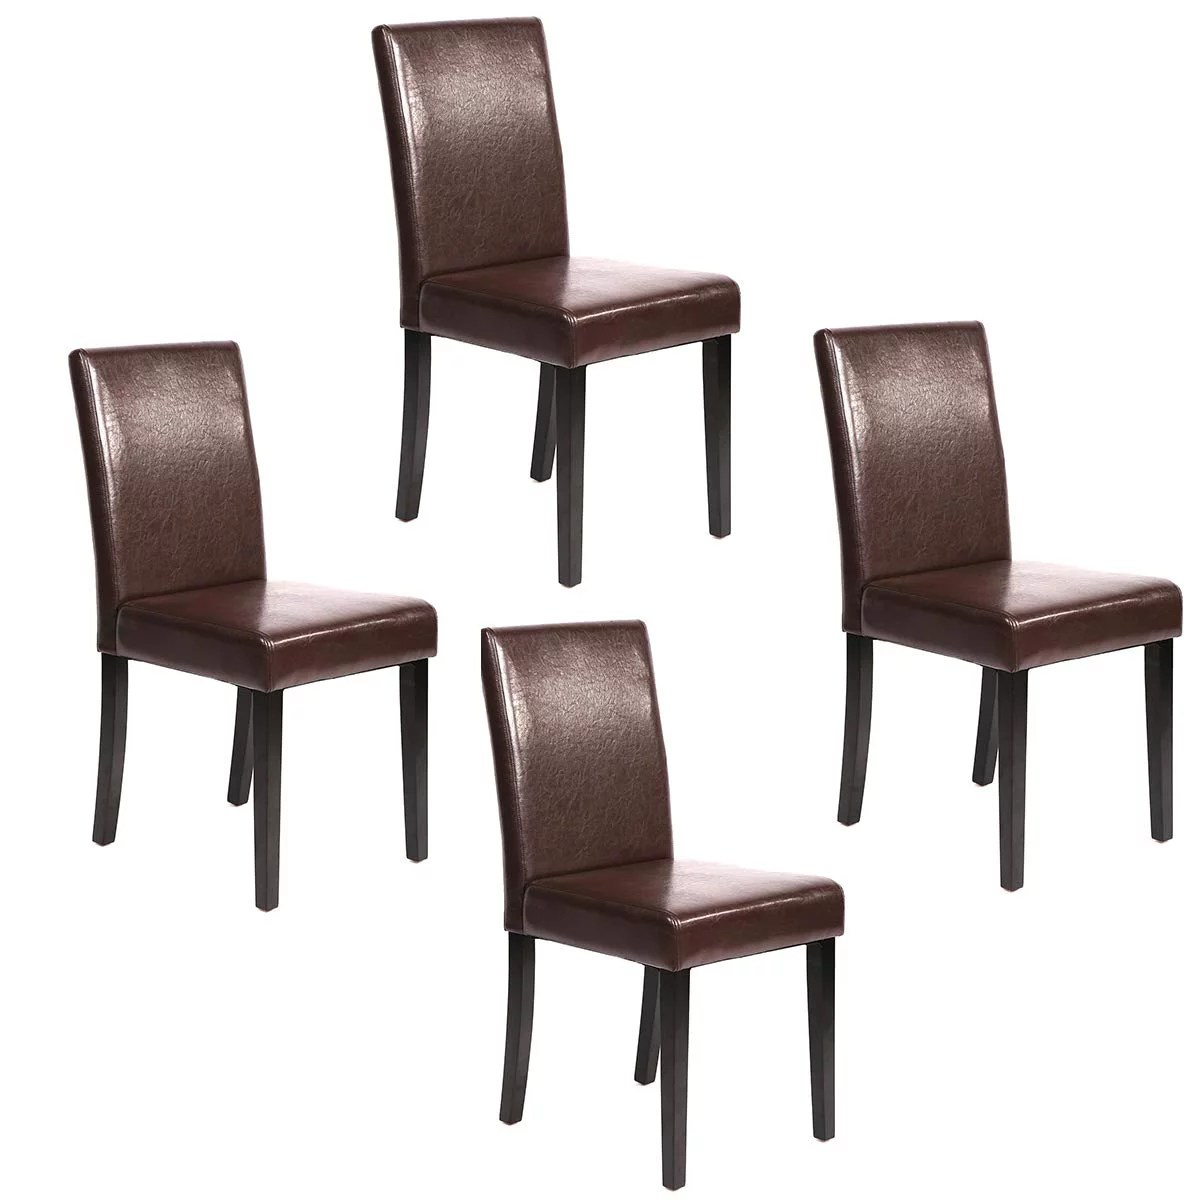 Set Of 4 Brown Leather Contemporary Elegant Design Dining Chairs Home Room Walmart Com Walmart Com